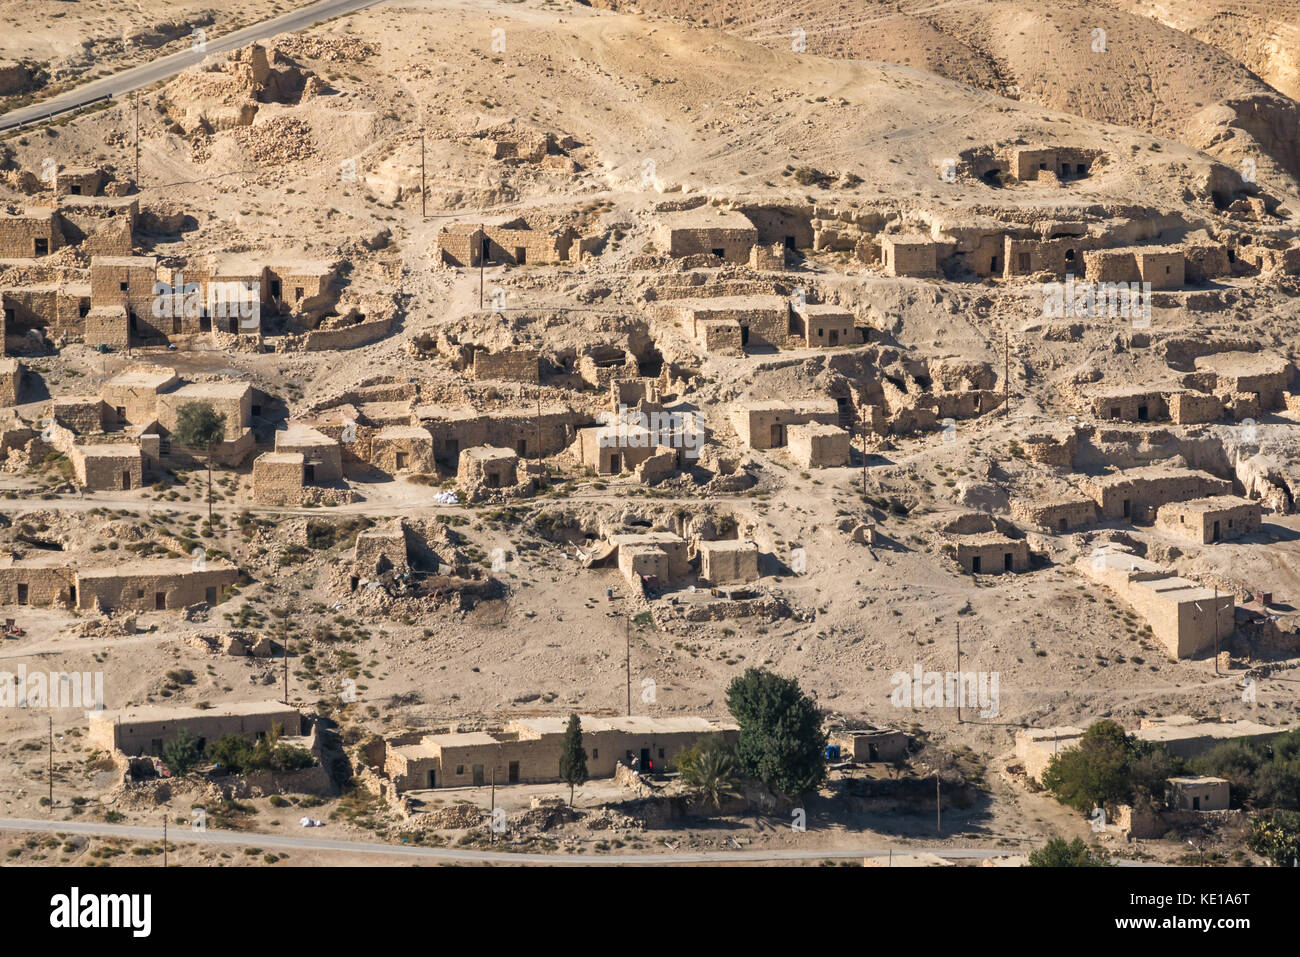 Zoomed view on Kings Highway of desert valley with mud brick houses in a village, Jordan, Middle East - Stock Image